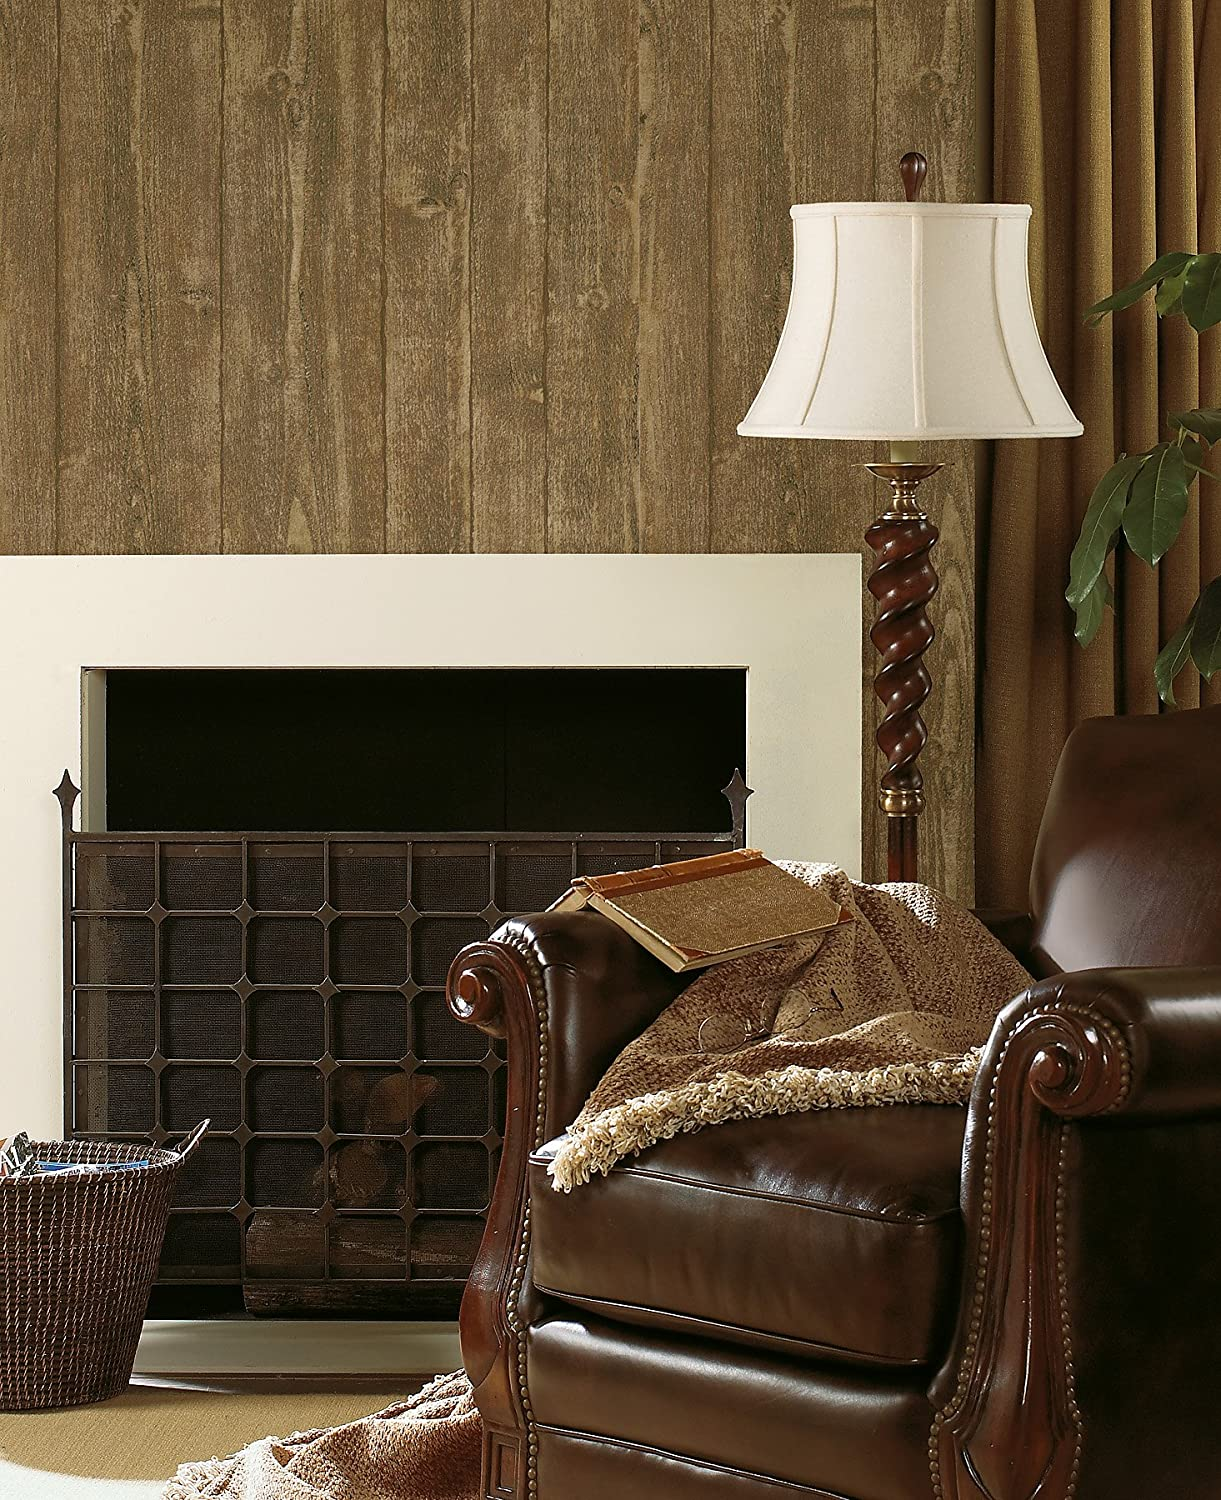 Textured Depth Wallpaper White Brewster Wallcovering--DROPSHIP Brewster 412-56909 20.5-Inch by 396-Inch Raised wood